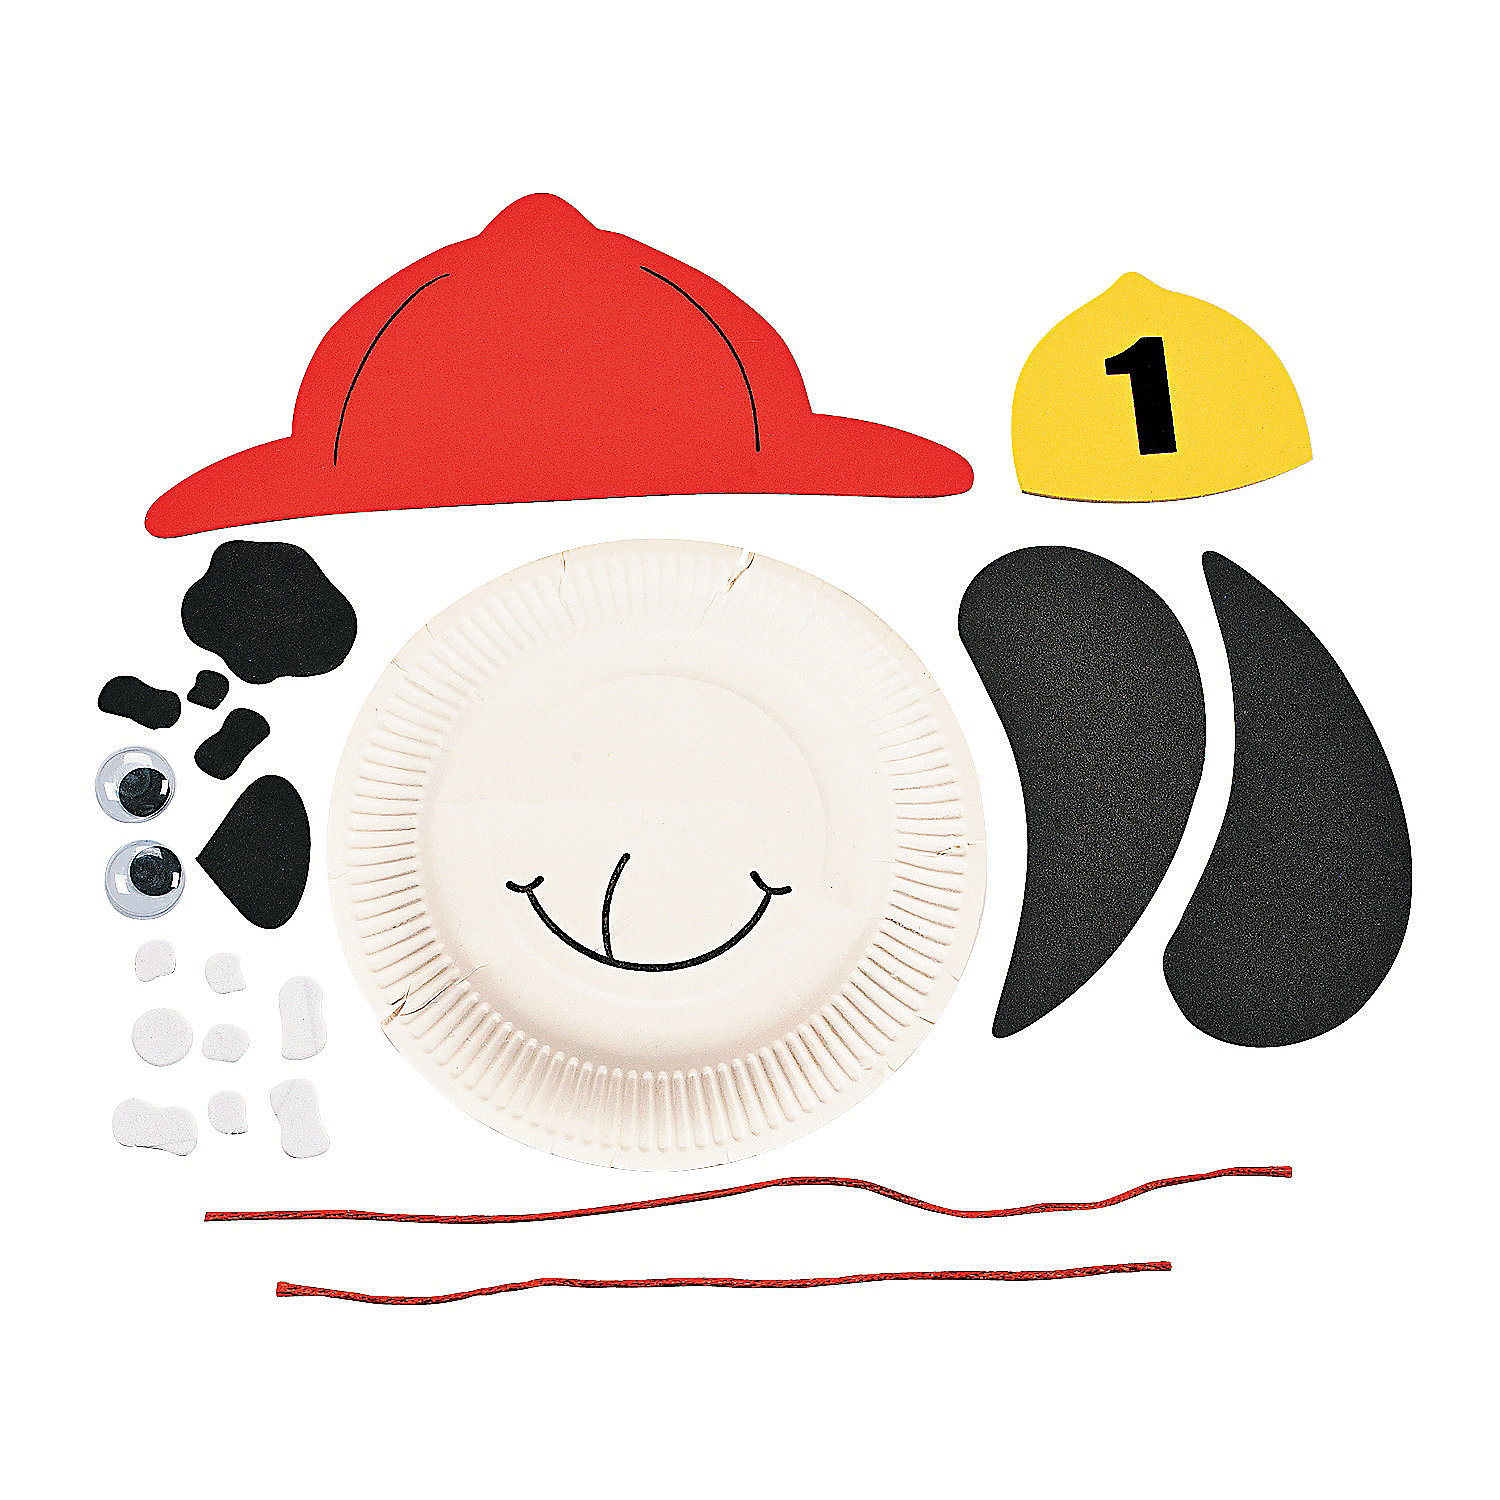 Dalmatian Dog Fire Safety Paper Plate Craft Kits